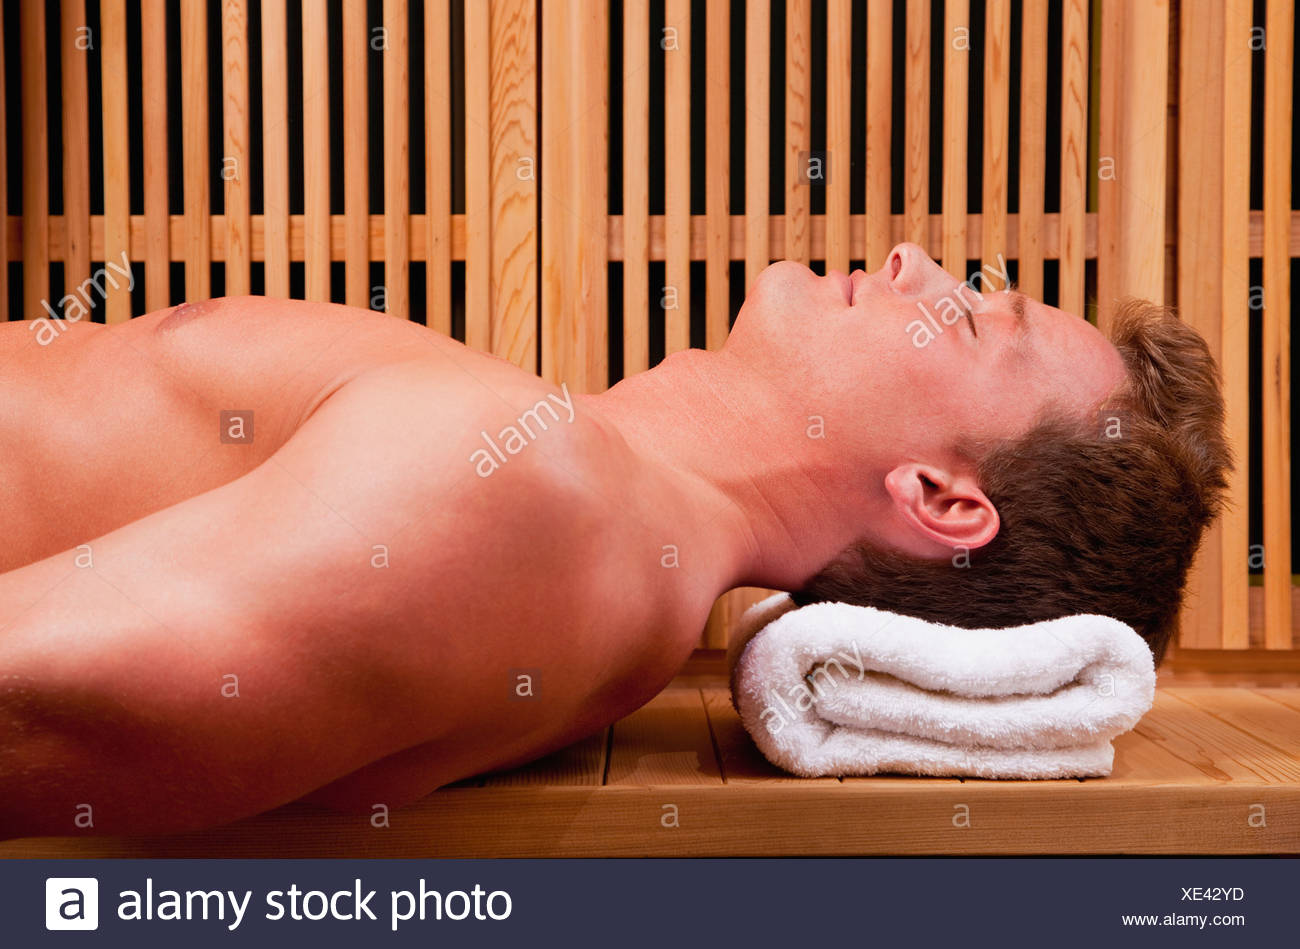 Young man in sauna - Stock Image